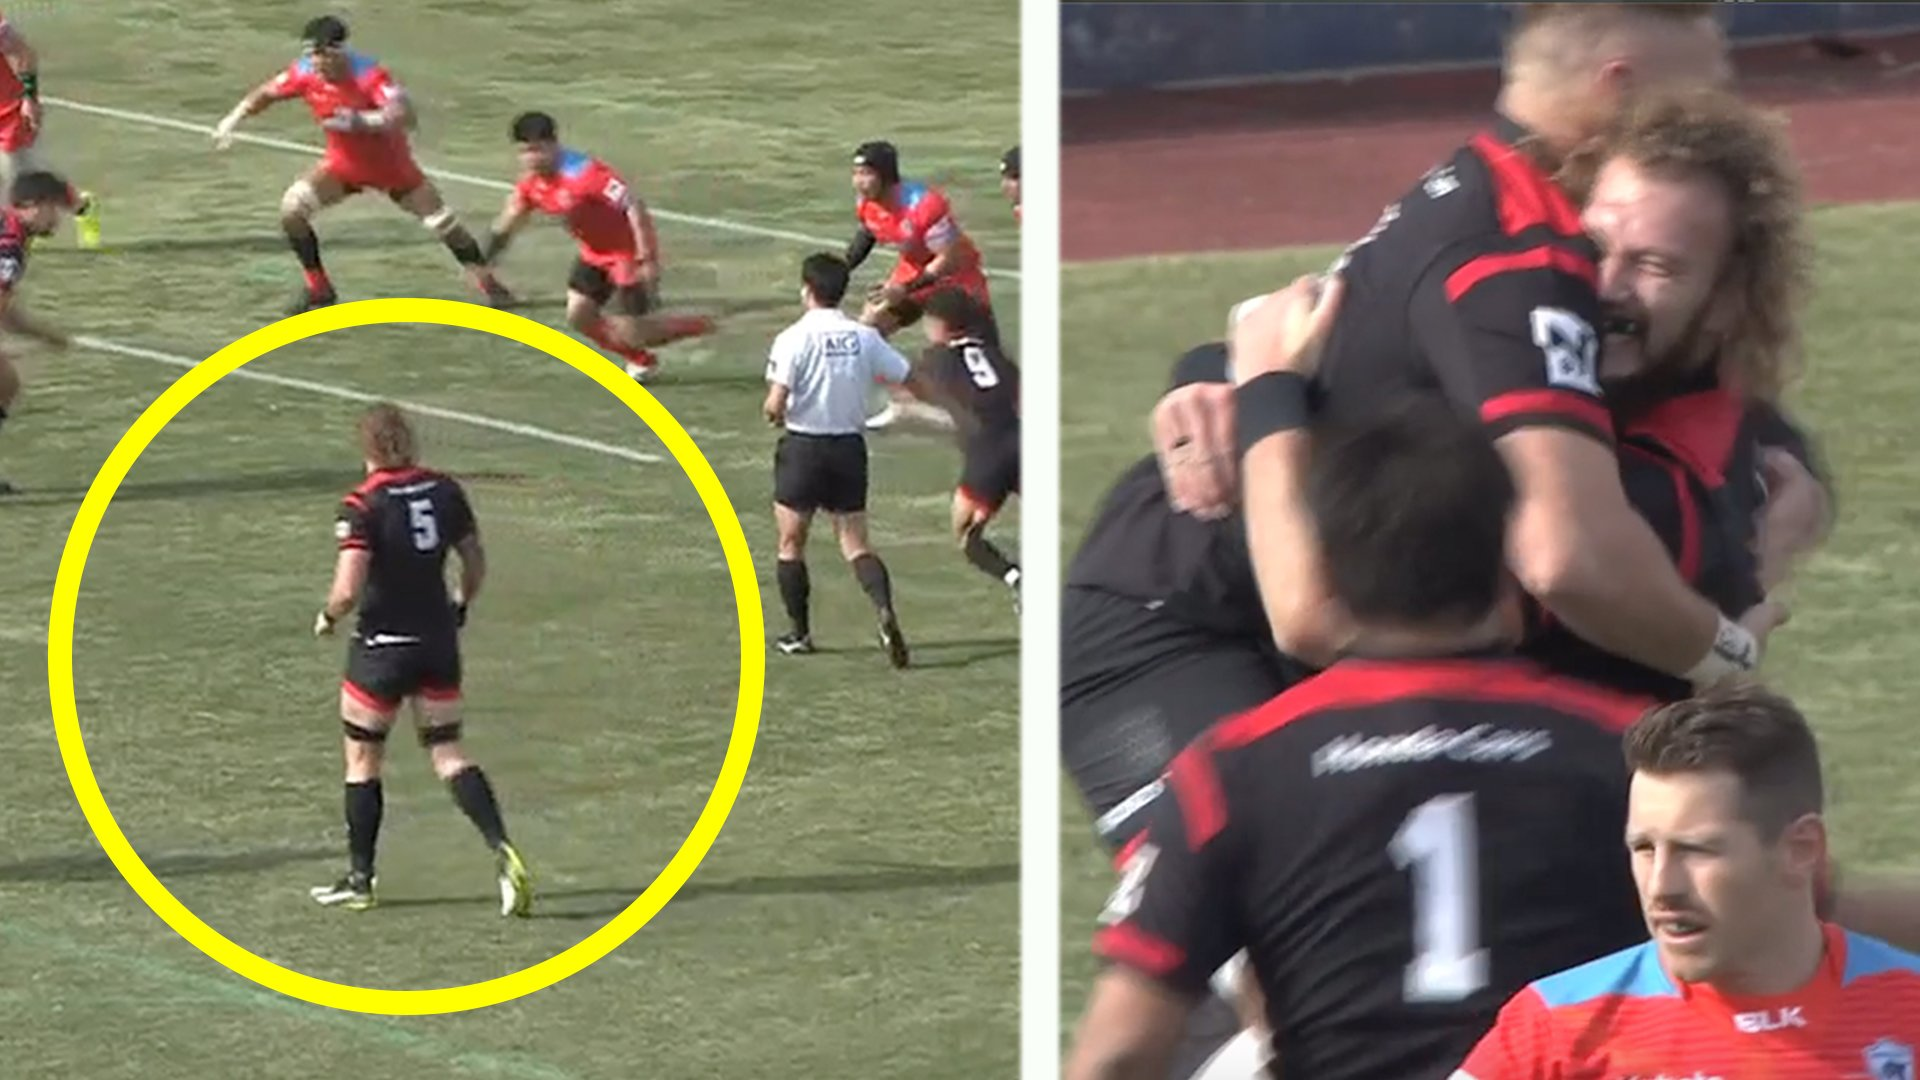 World Cup winning Springbok did something utterly outrageous in Japan this weekend - Rugby OnSlaught